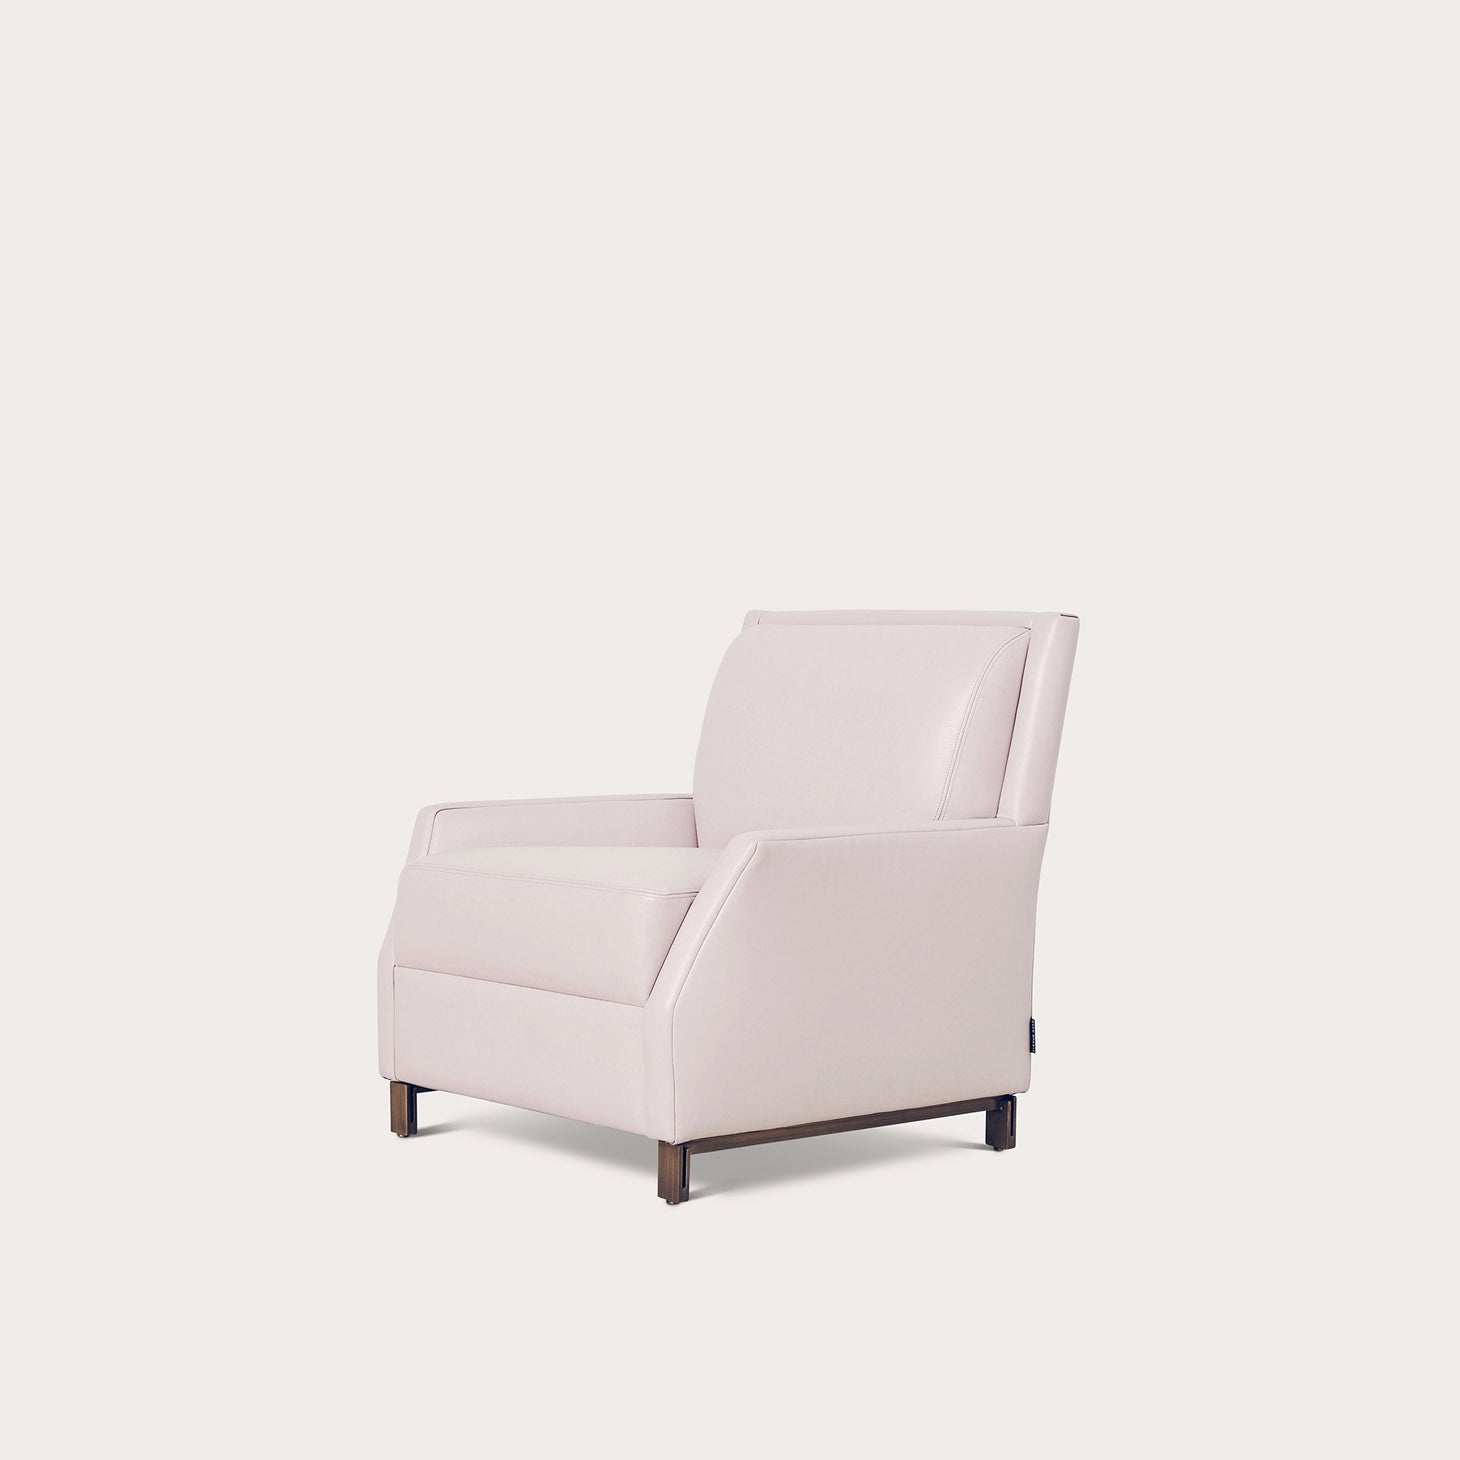 Perry Street Seating Yabu Pushelberg Designer Furniture Sku: 990-240-10095